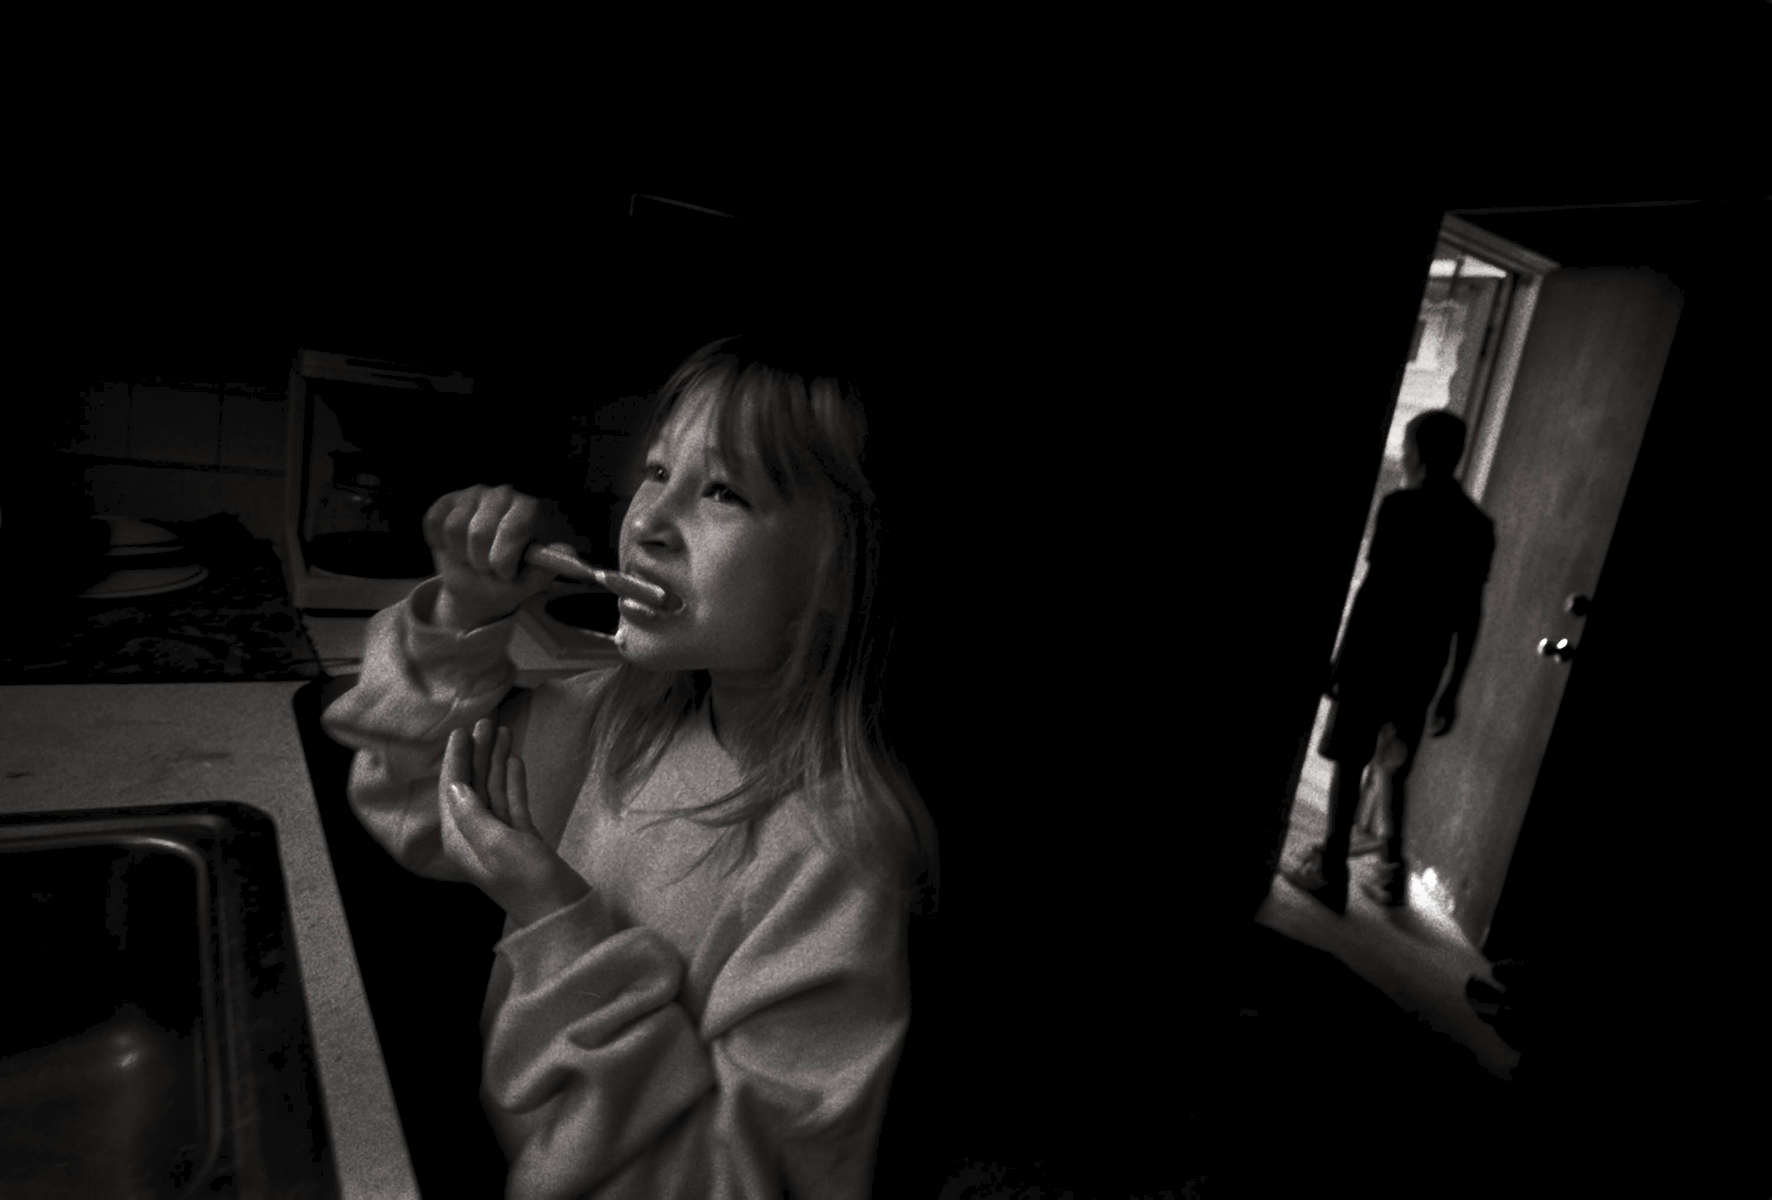 Amanda Rose brushes her teeth one morning in the kitchen sink while Clifford Rose is framed in the doorway.